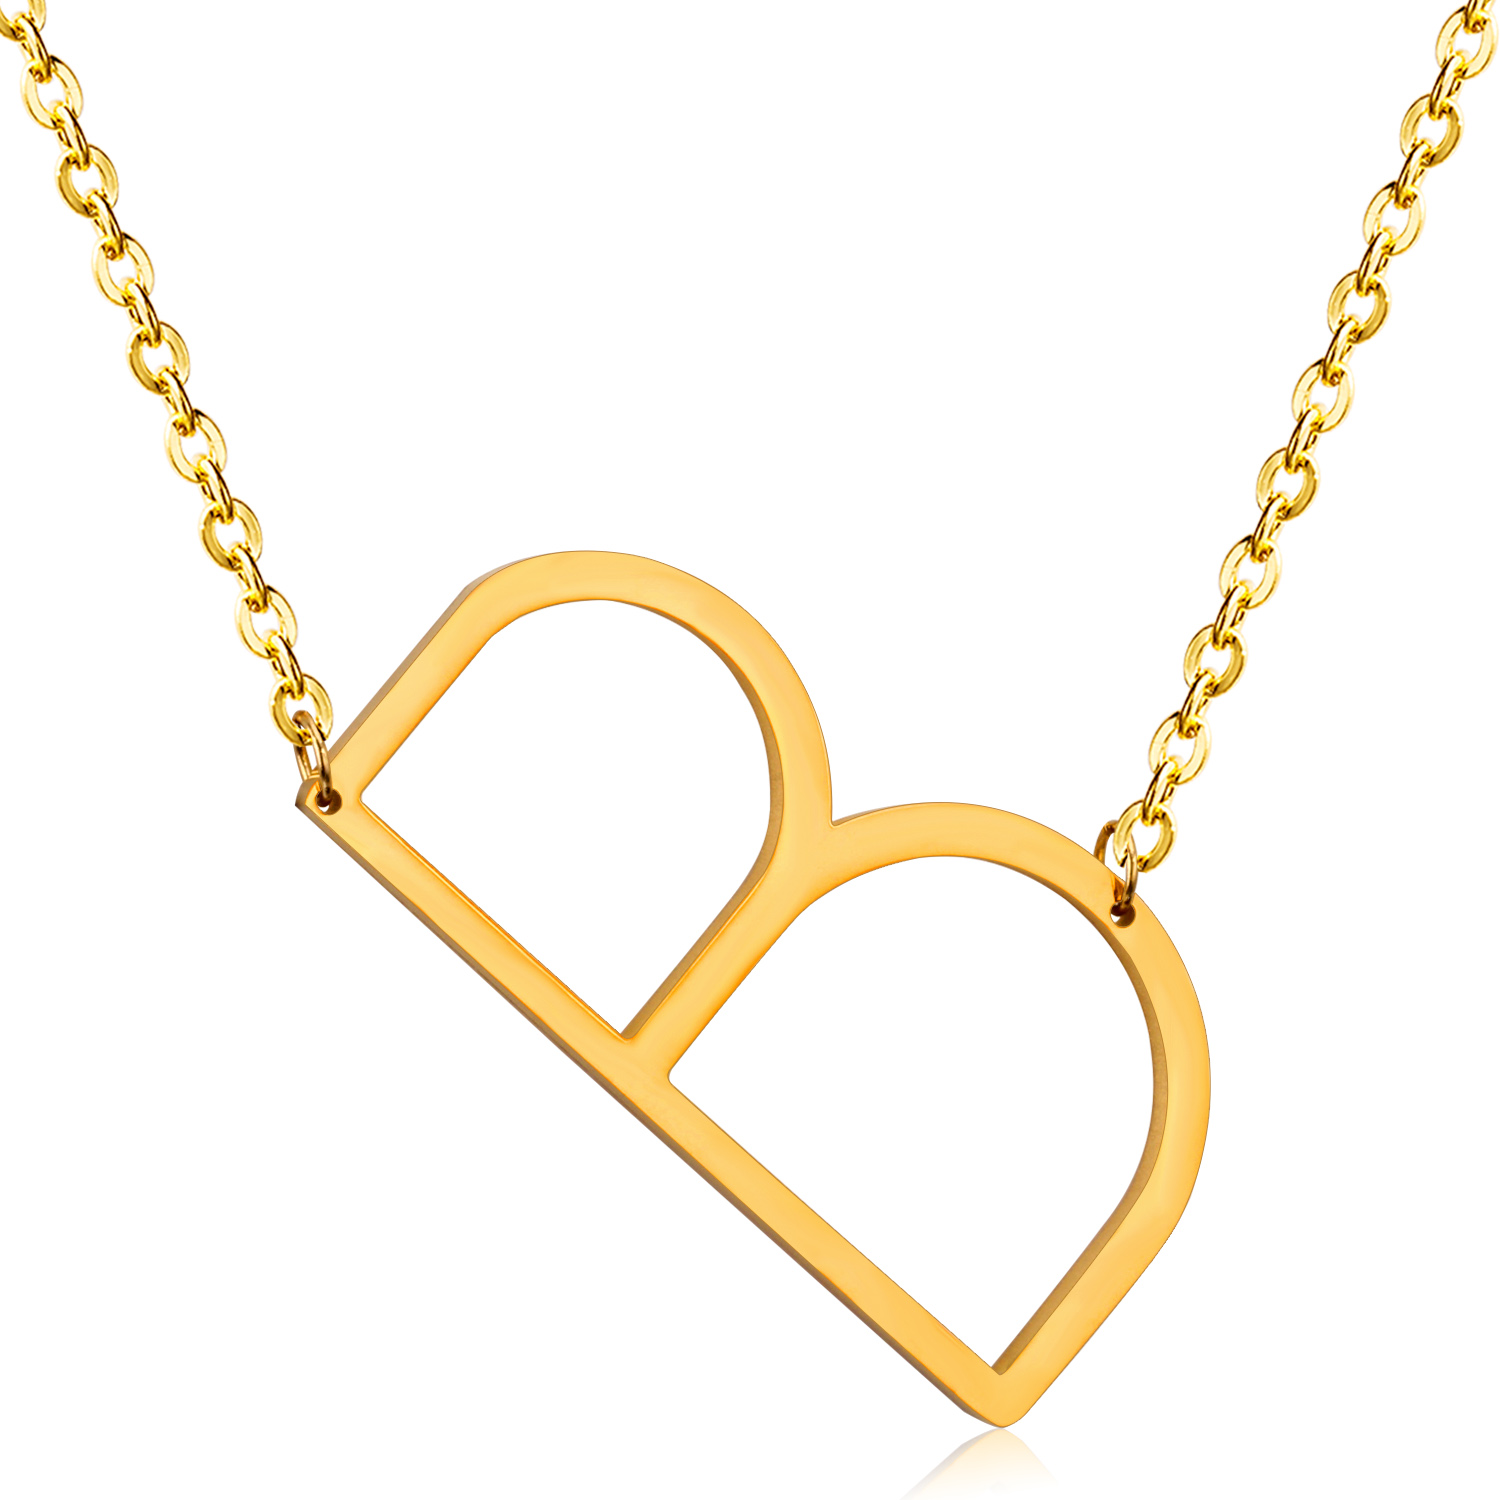 gold necklace capital initial b letter pendant necklace fashion alphabet letter necklace women men